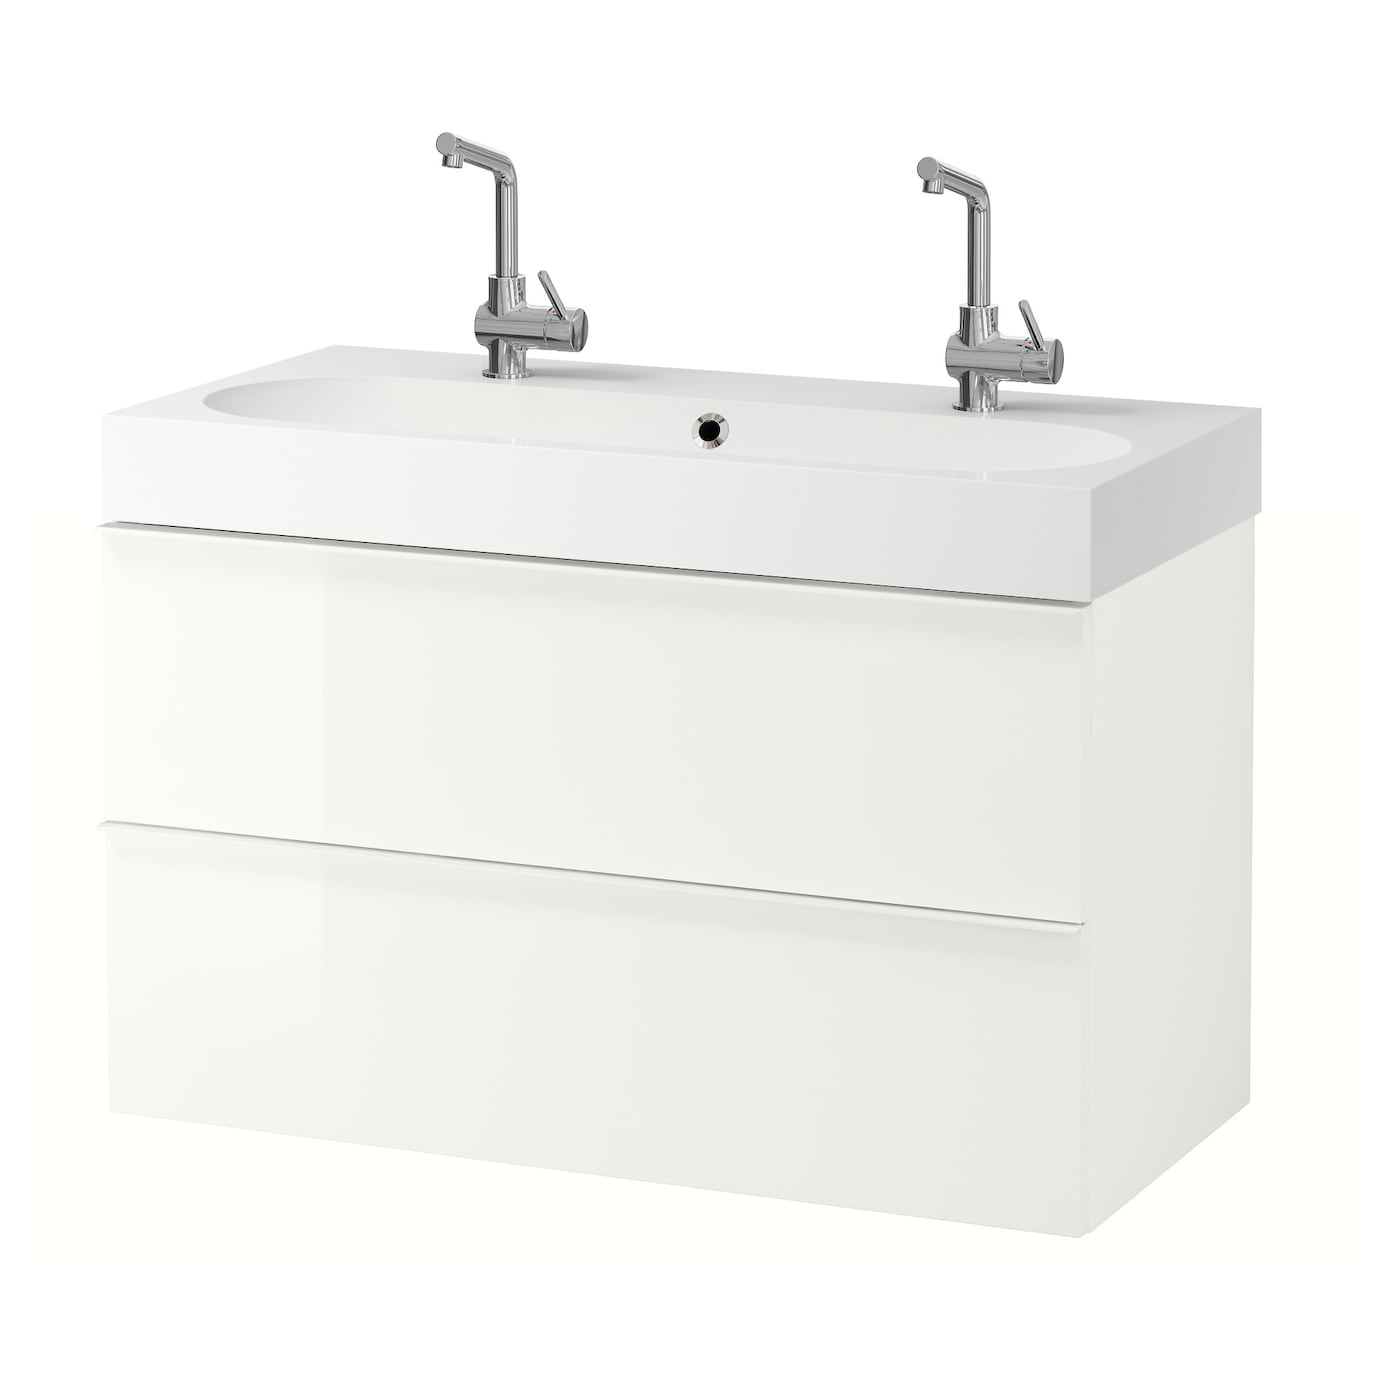 Meubles Lavabos Complets Ikea